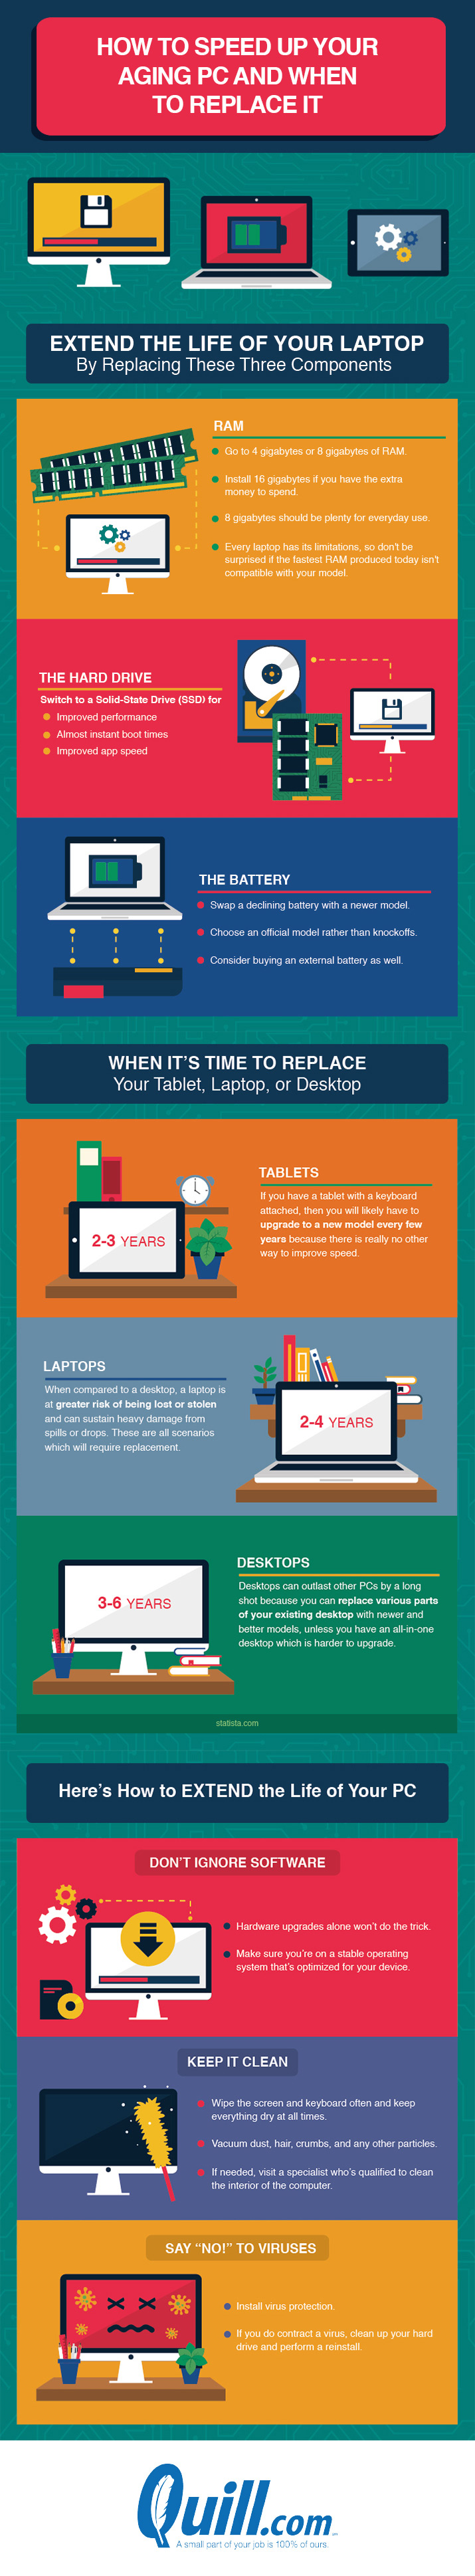 How to Speed Up Your Aging PC and When to Replace It